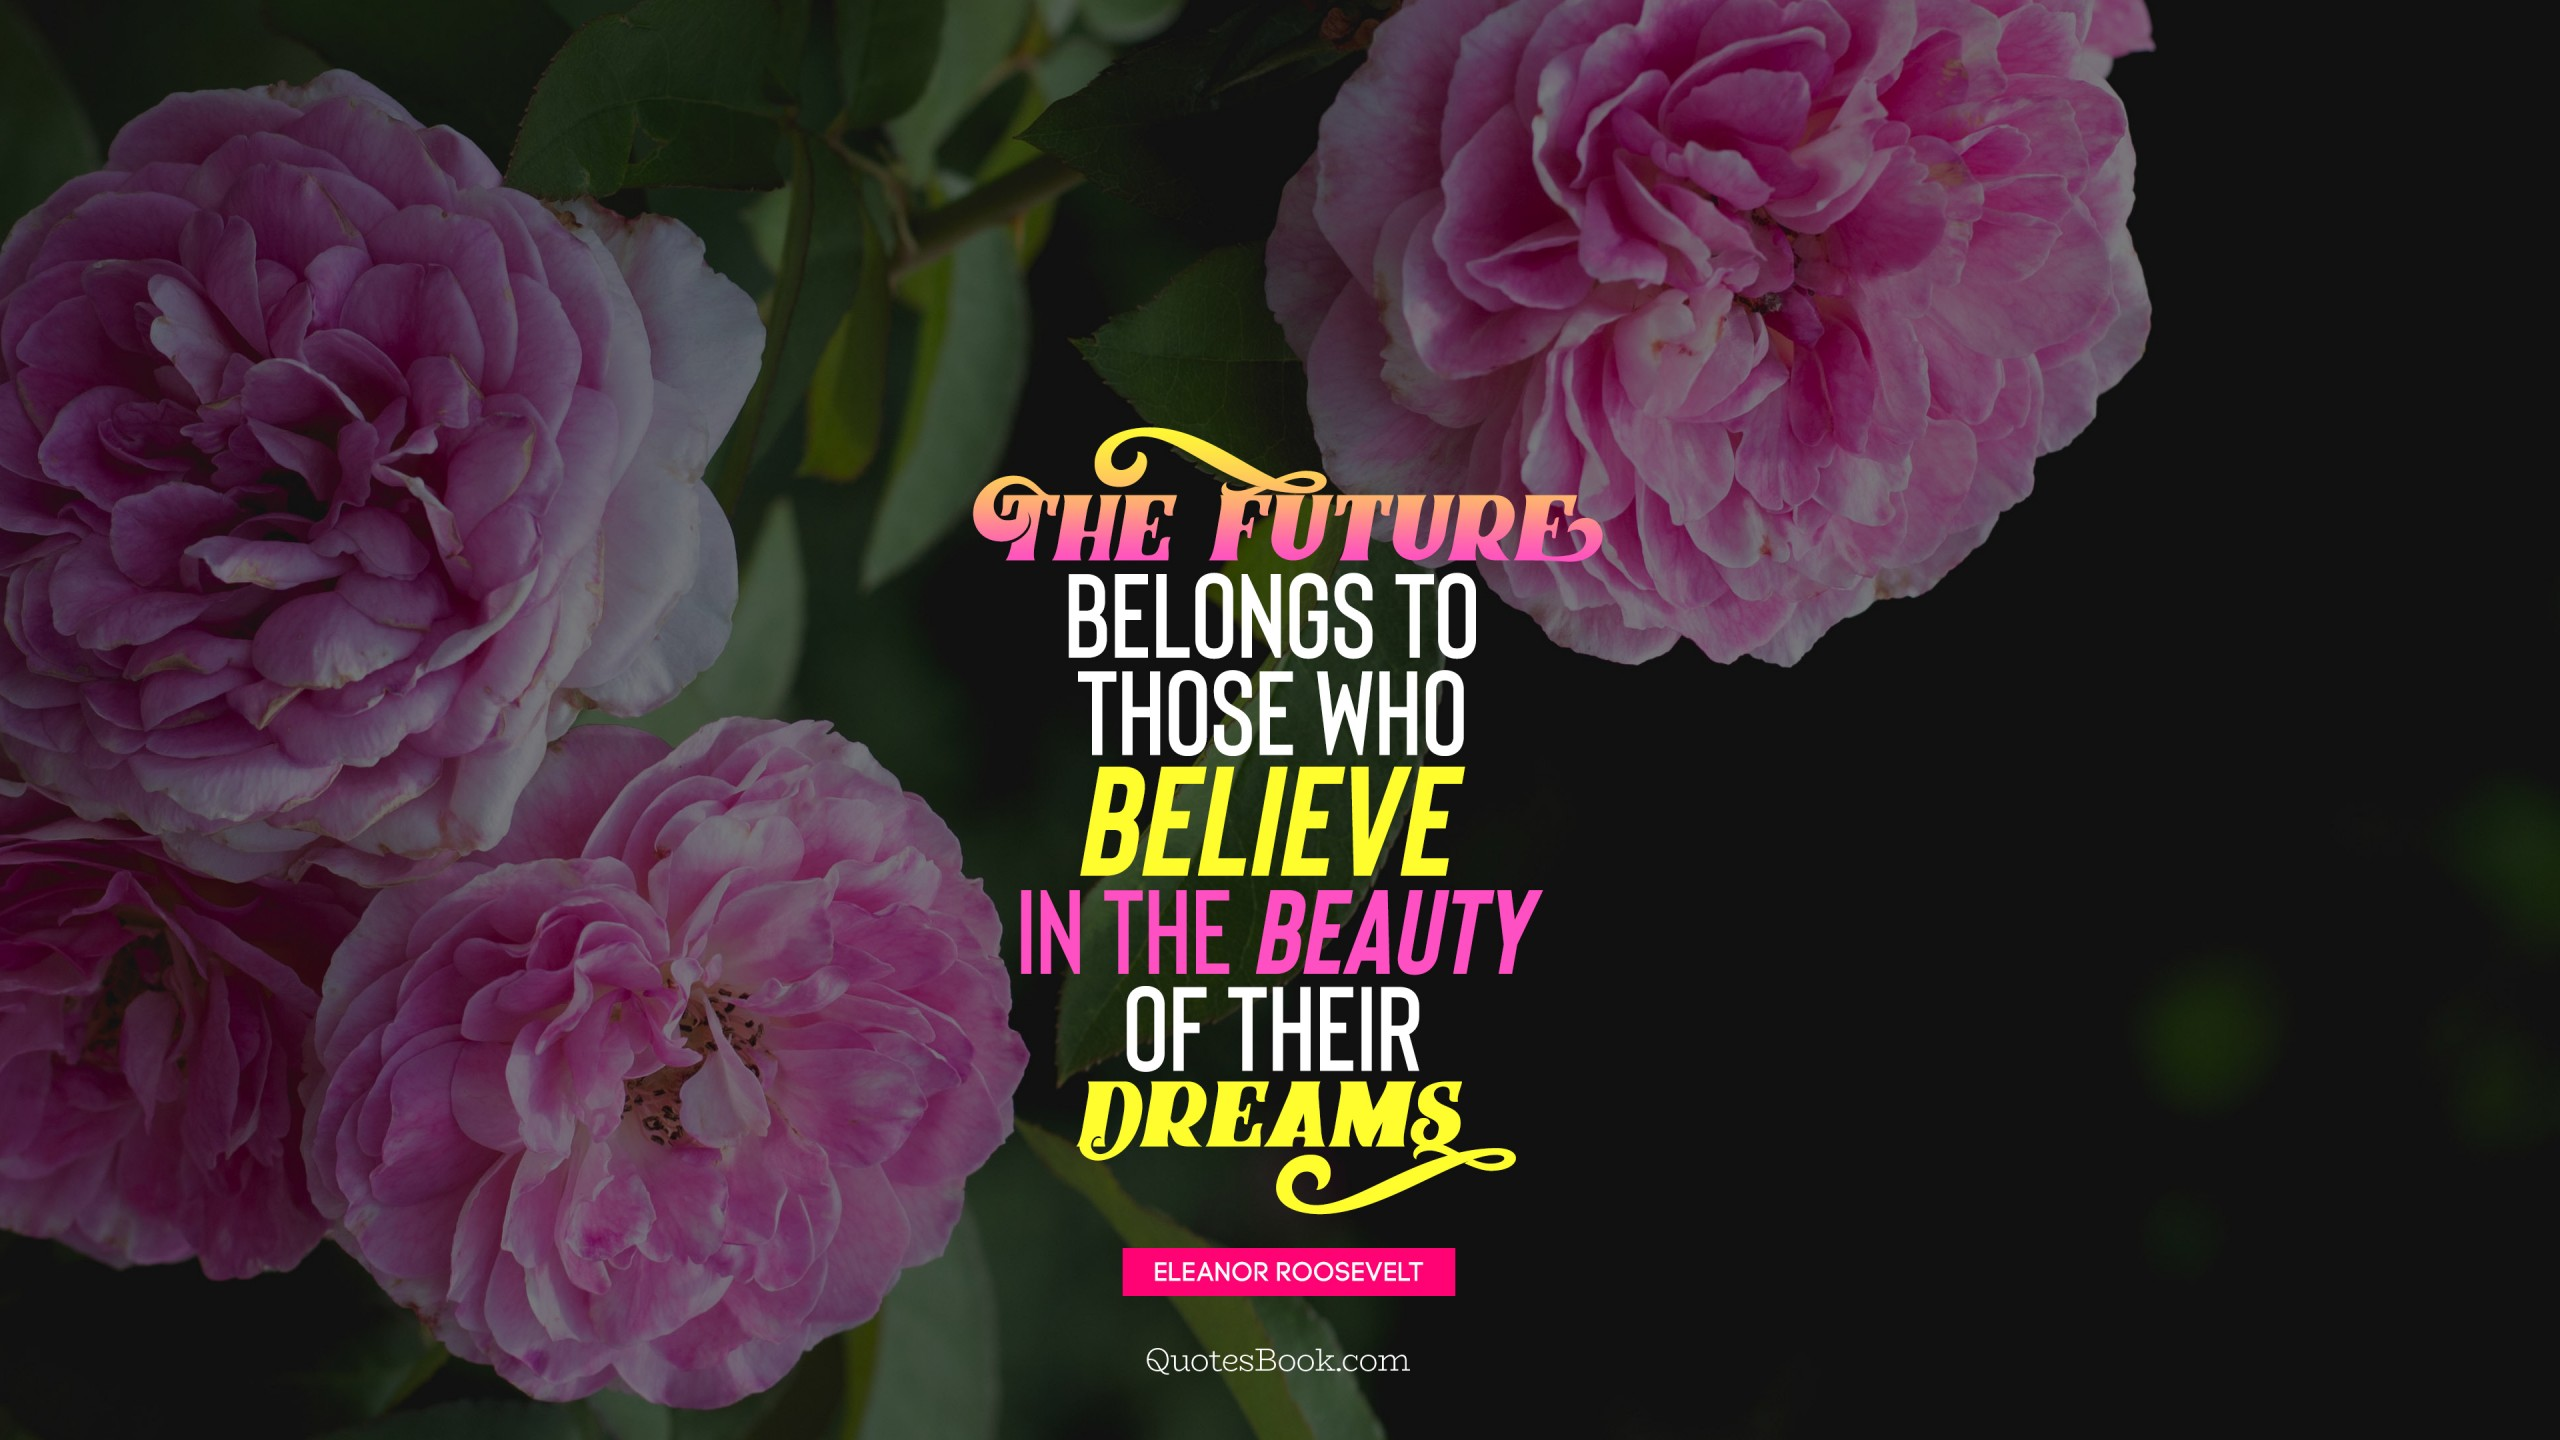 The Future Belongs To Those Who Believe In The Beauty Of Their